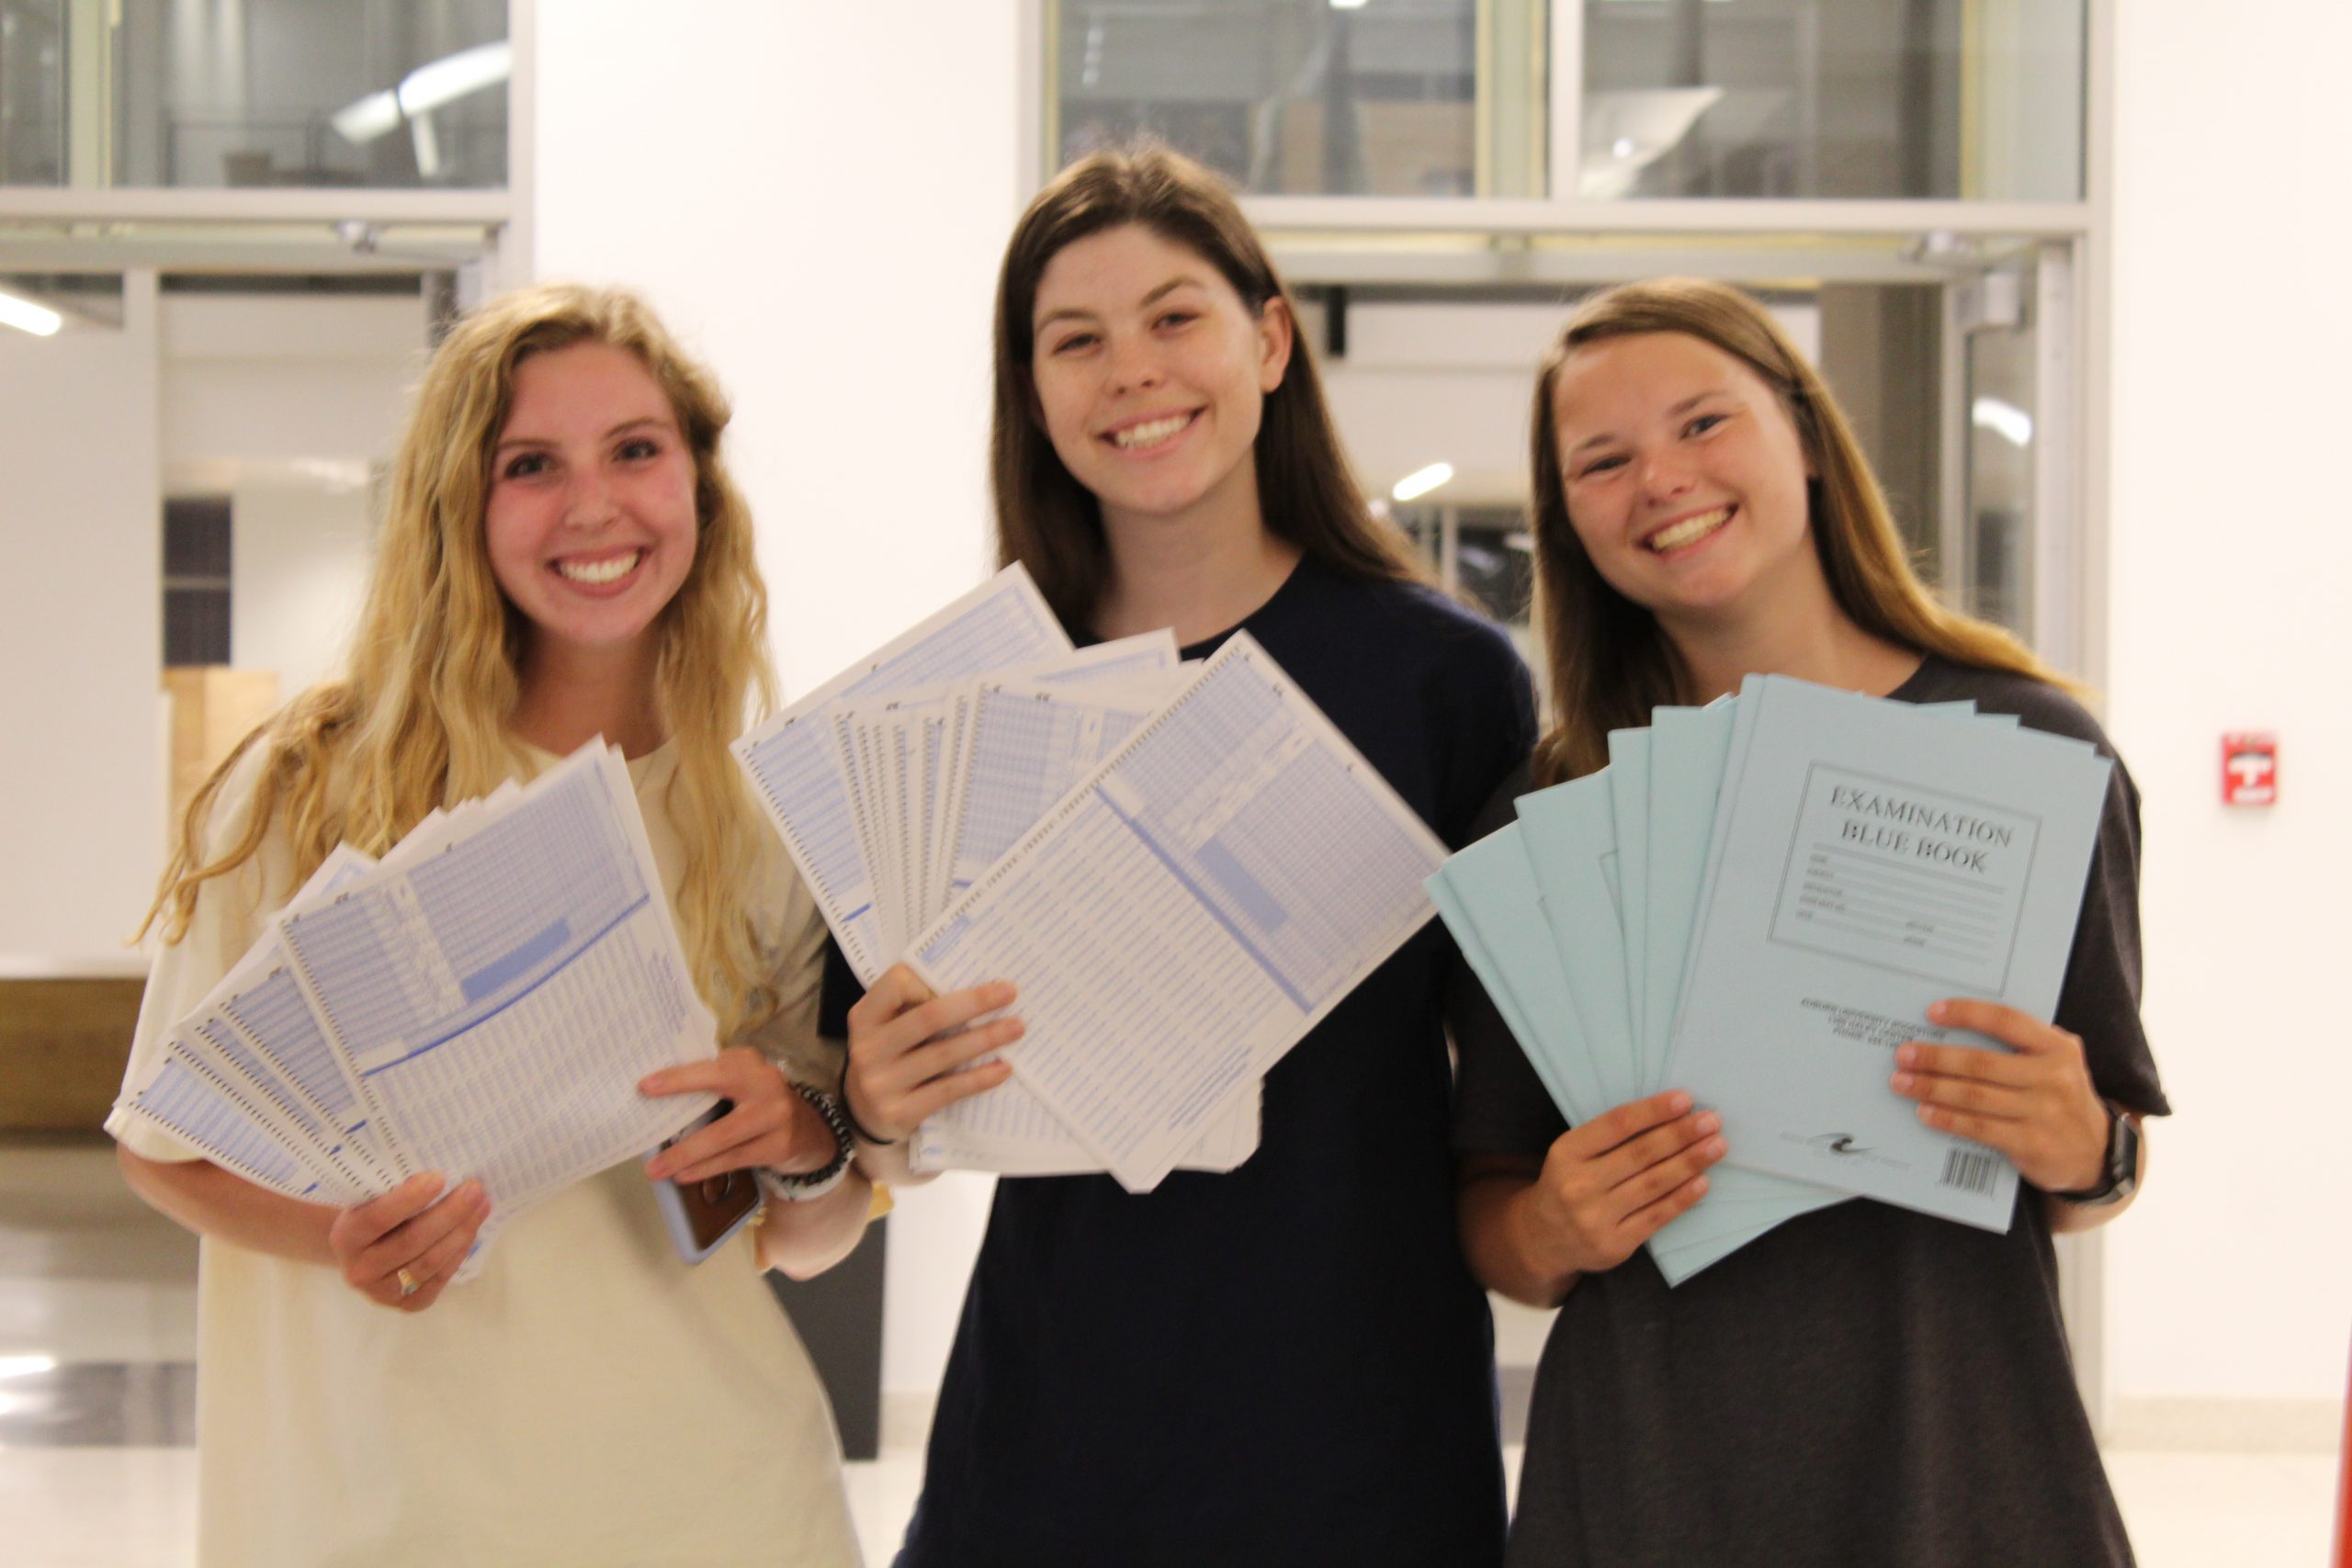 Three Student Government Association members stand in the Mell Classroom Building at a past Up All Night. They are holding scantrons and Blue Books that they passed out to students as they prepare for finals.